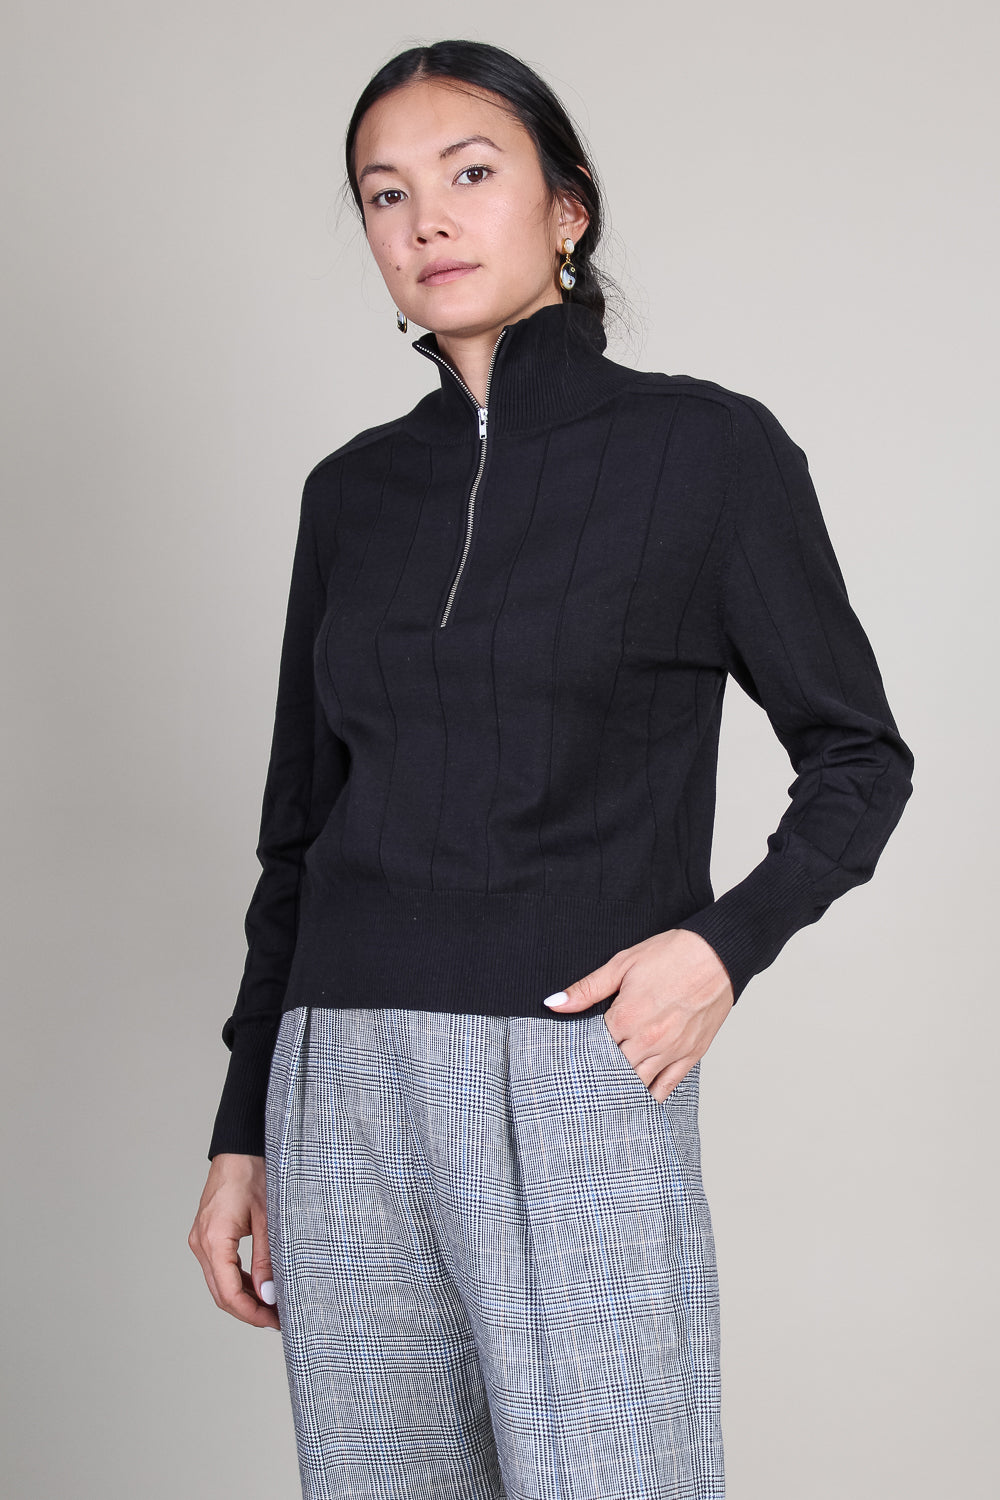 Octave Pullover in Black